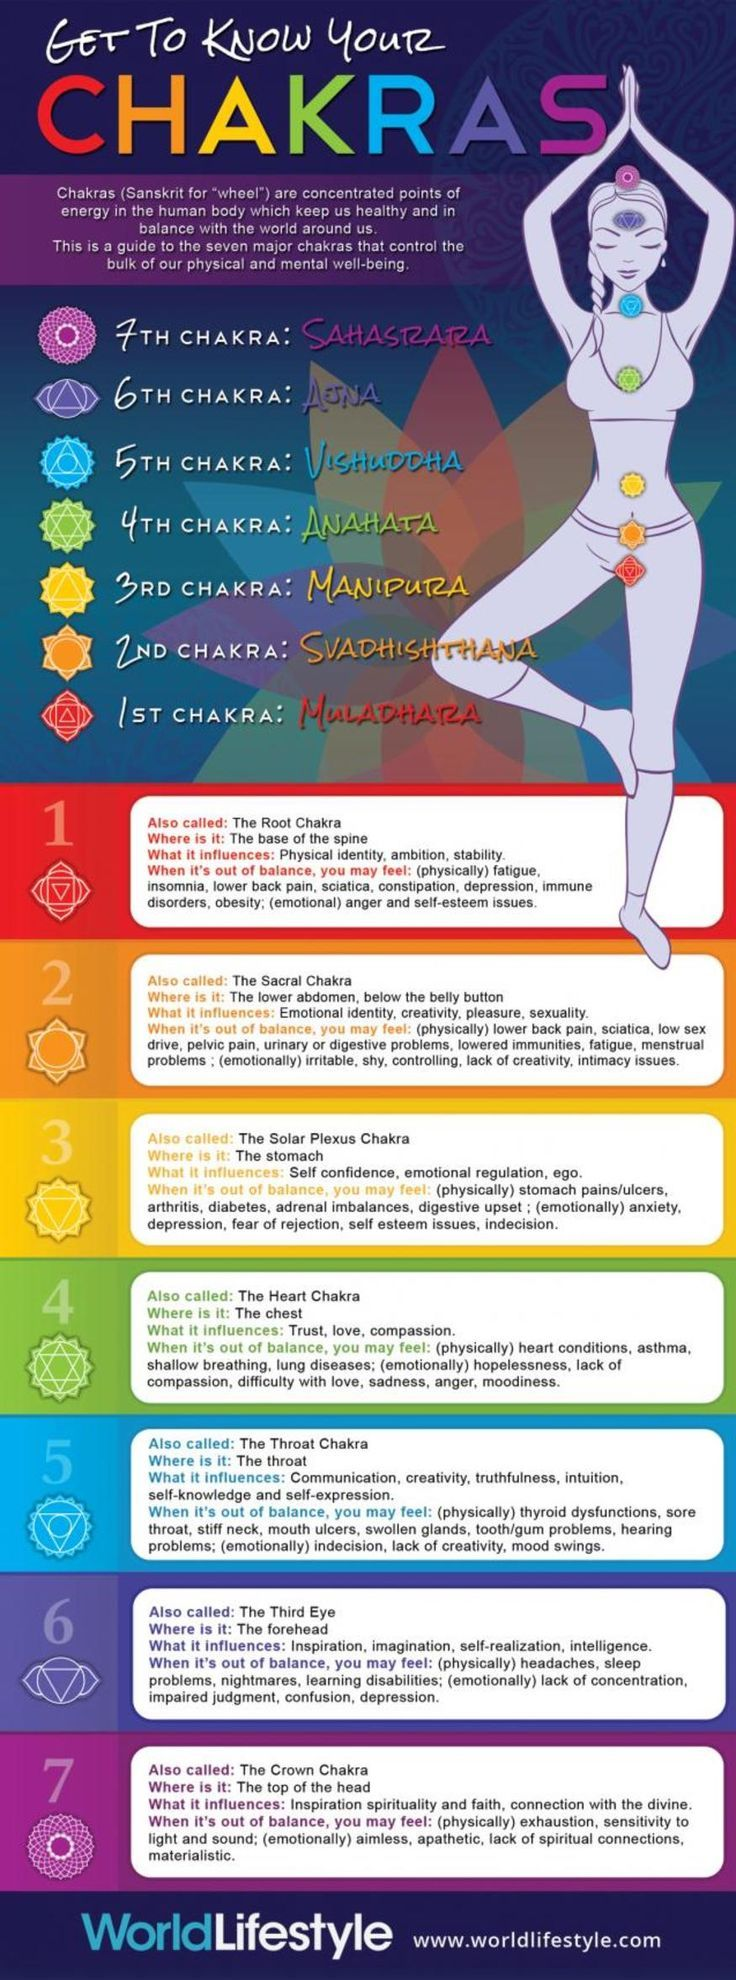 Do you know your chakras? Well get to know it with this little cheat sheet! Visi...